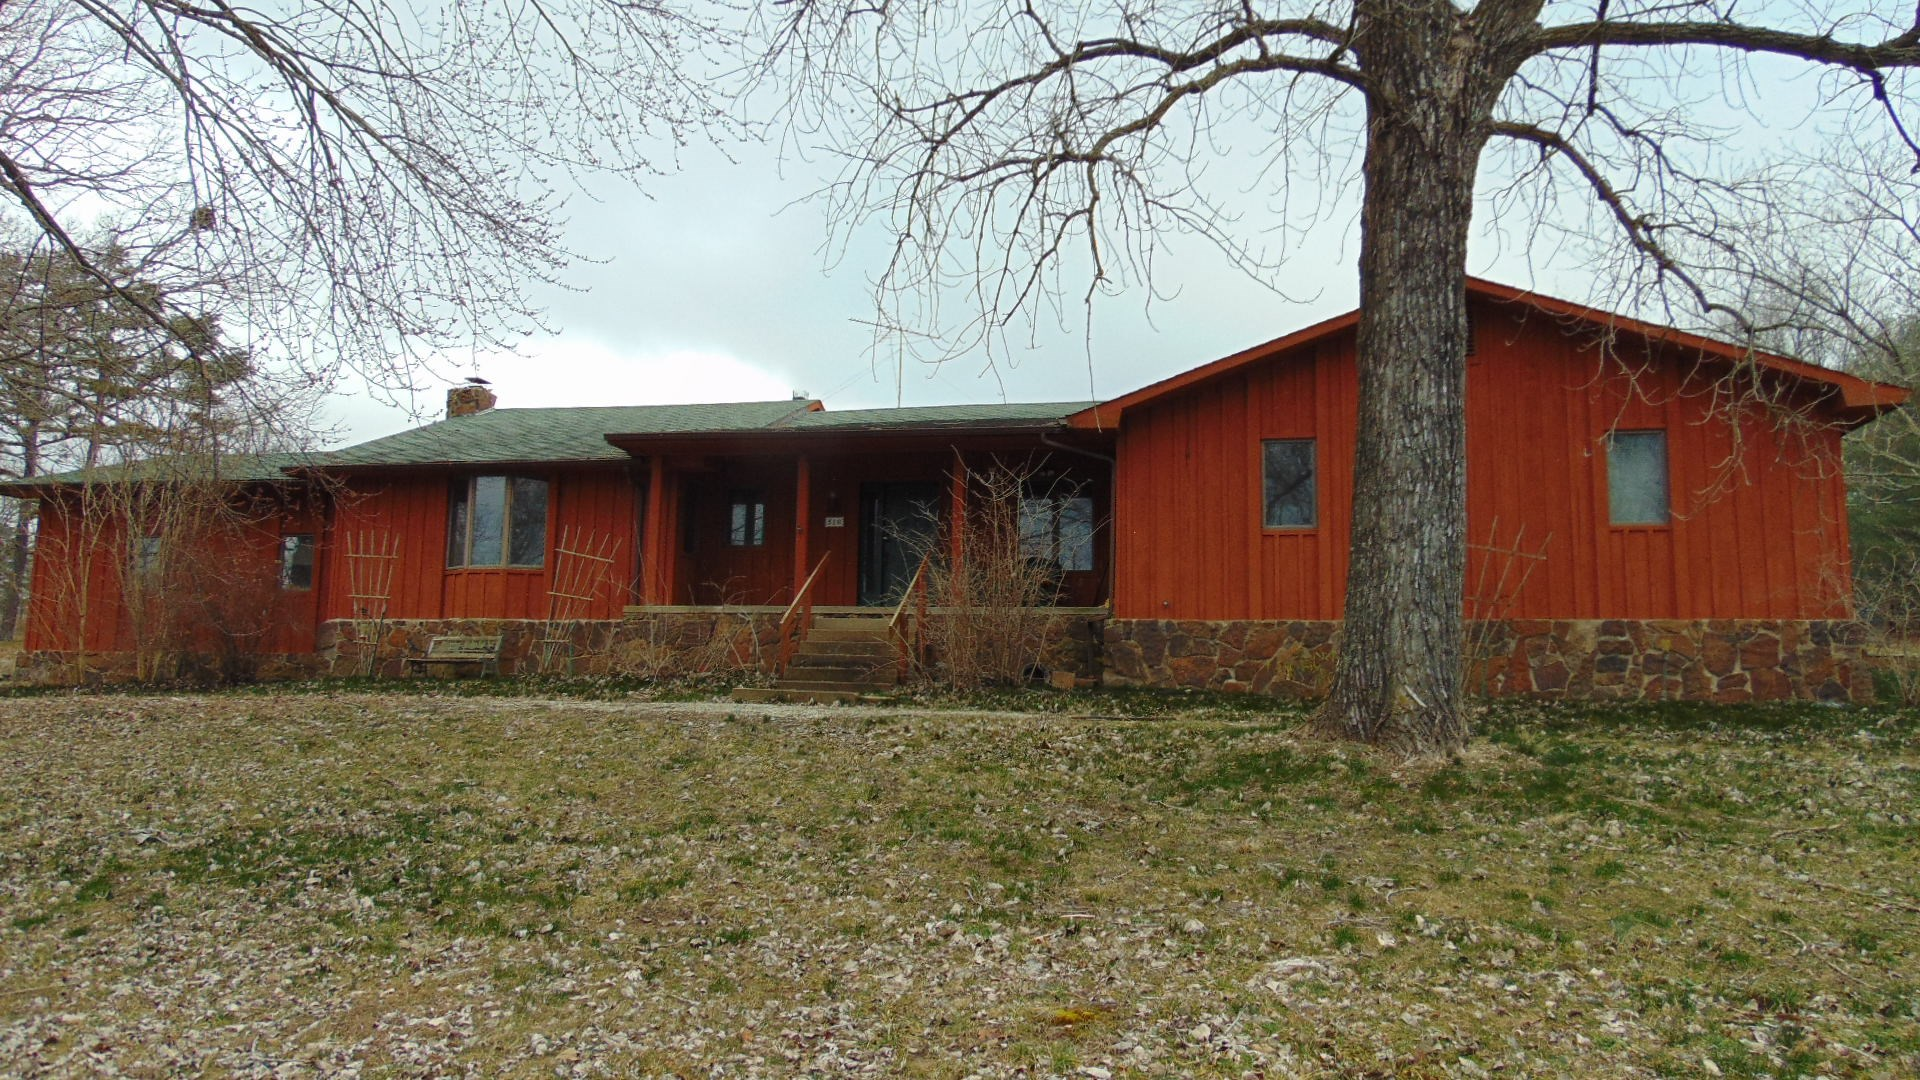 Country Home with Acreage for Sale South Central Missouri